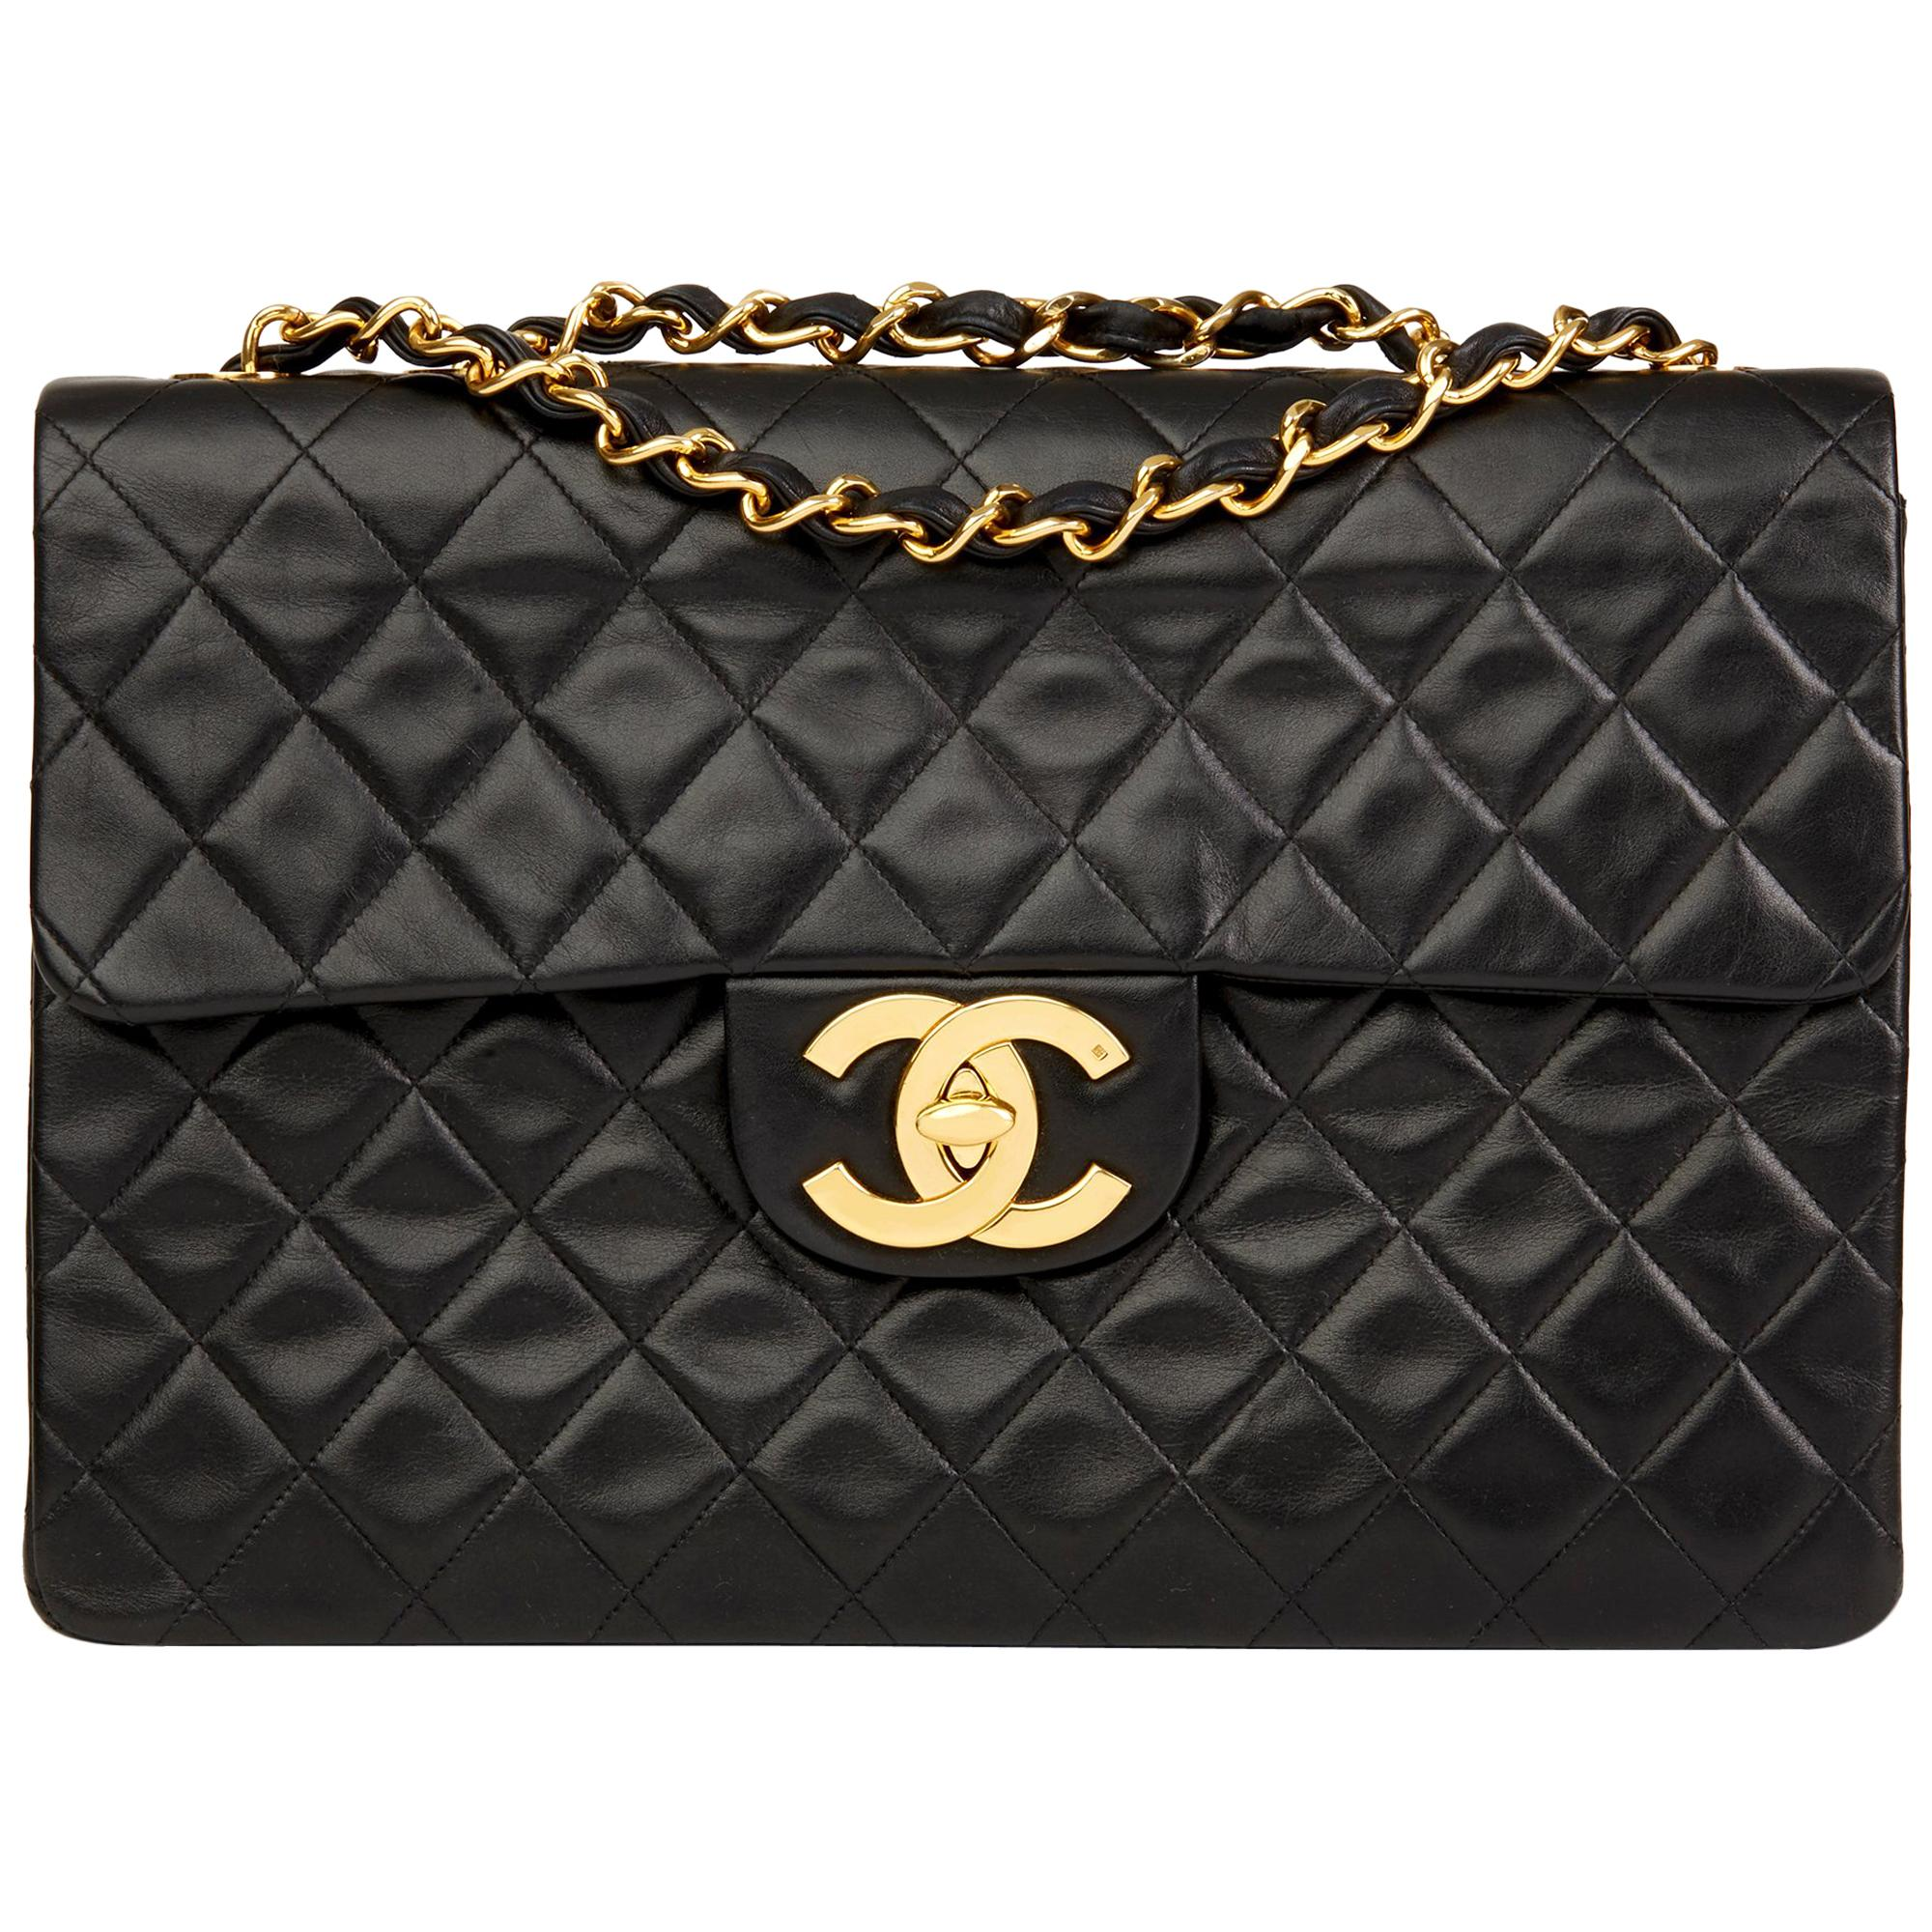 ac1a990492c4 1995 Chanel Black Quilted Lambskin Vintage Medium Paris Limited Double Flap  Bag For Sale at 1stdibs